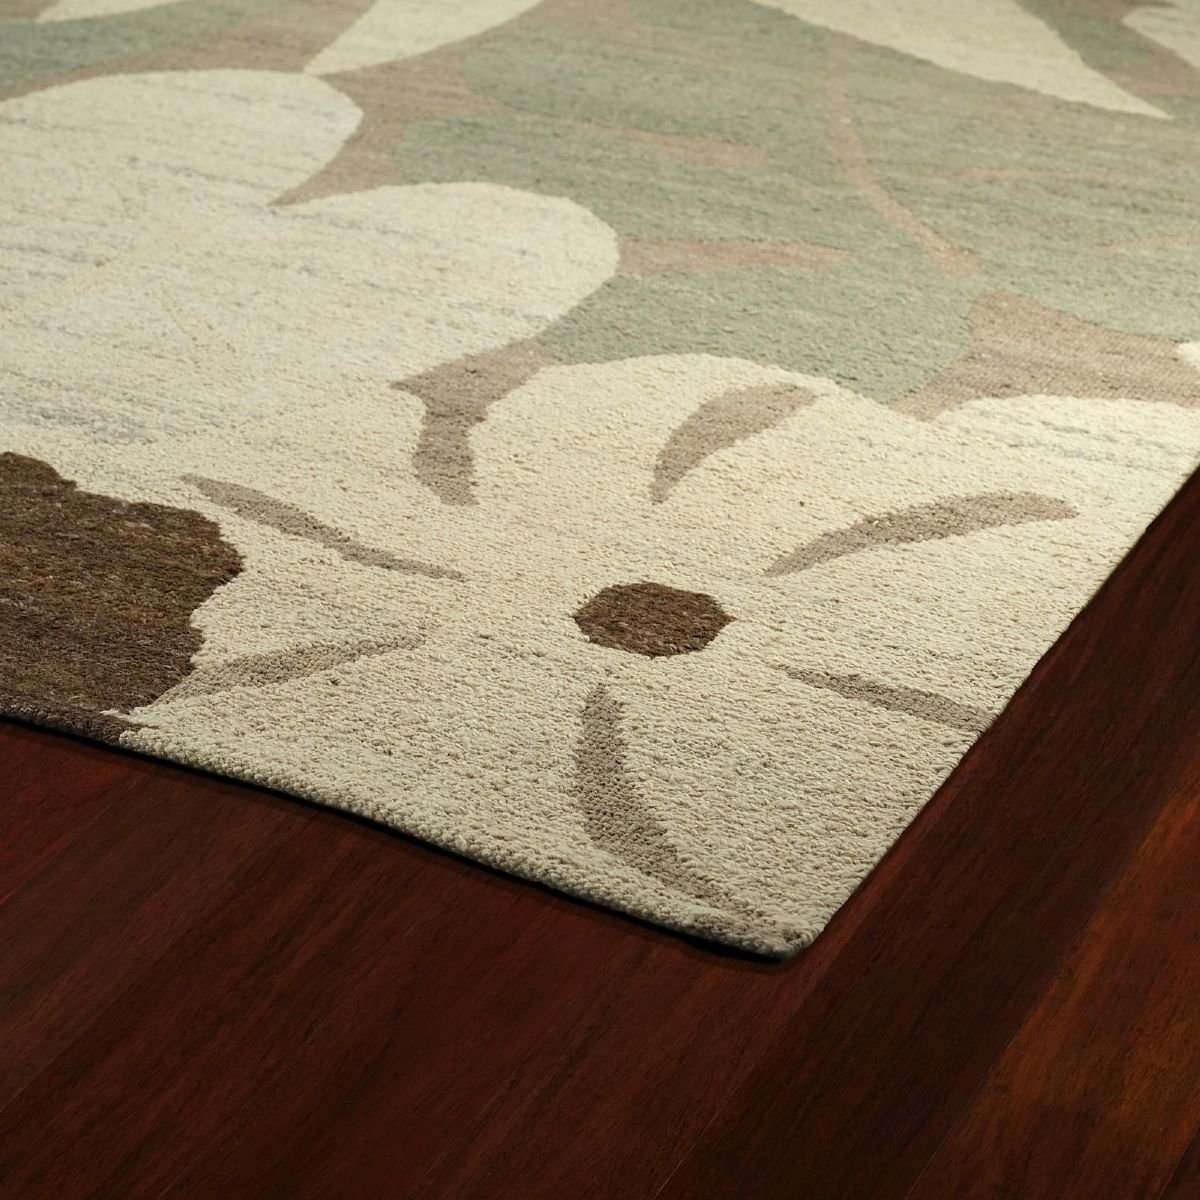 Kaleen Contemporary Rectangle Area Rug 5'x7'9'' in Spa Color From Mallard Creek Collection by Kaleen (Image #2)